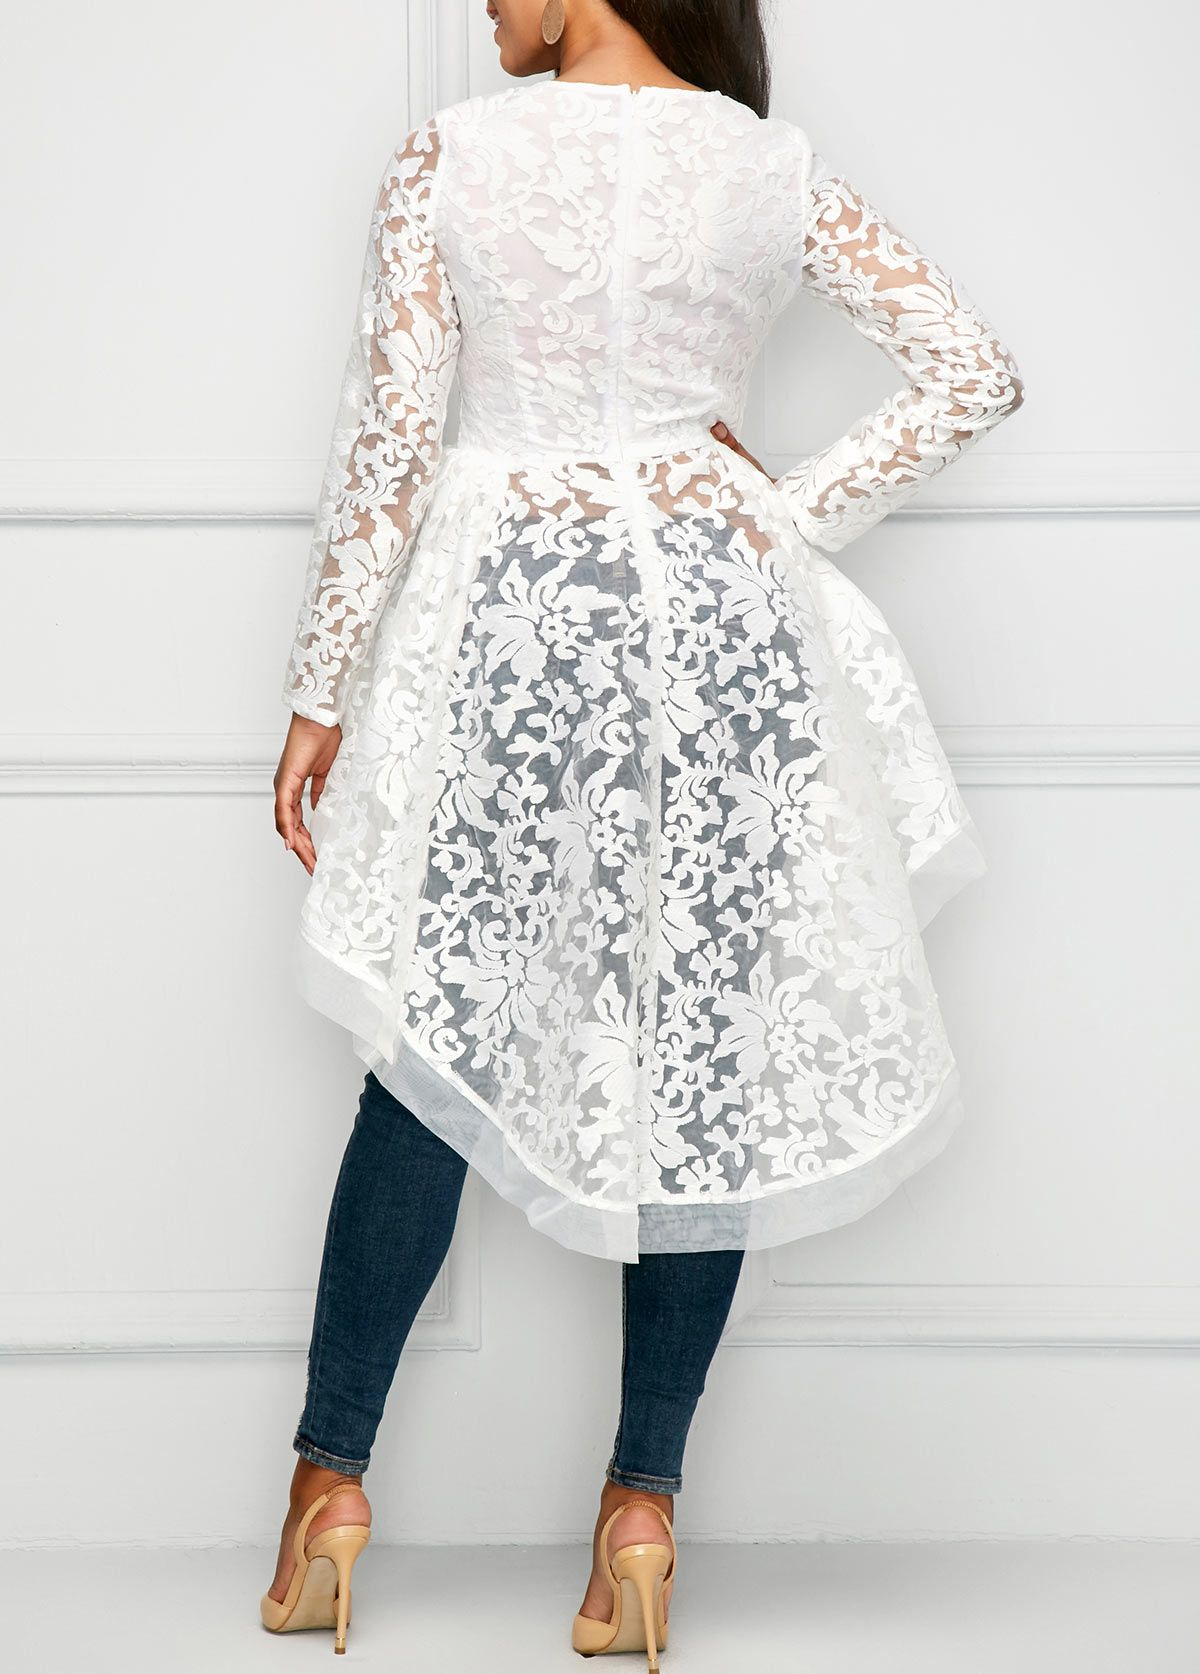 27a87a0b441253 High Low Long Sleeve Round Neck Lace Blouse | Rosewe.com - USD $36.89